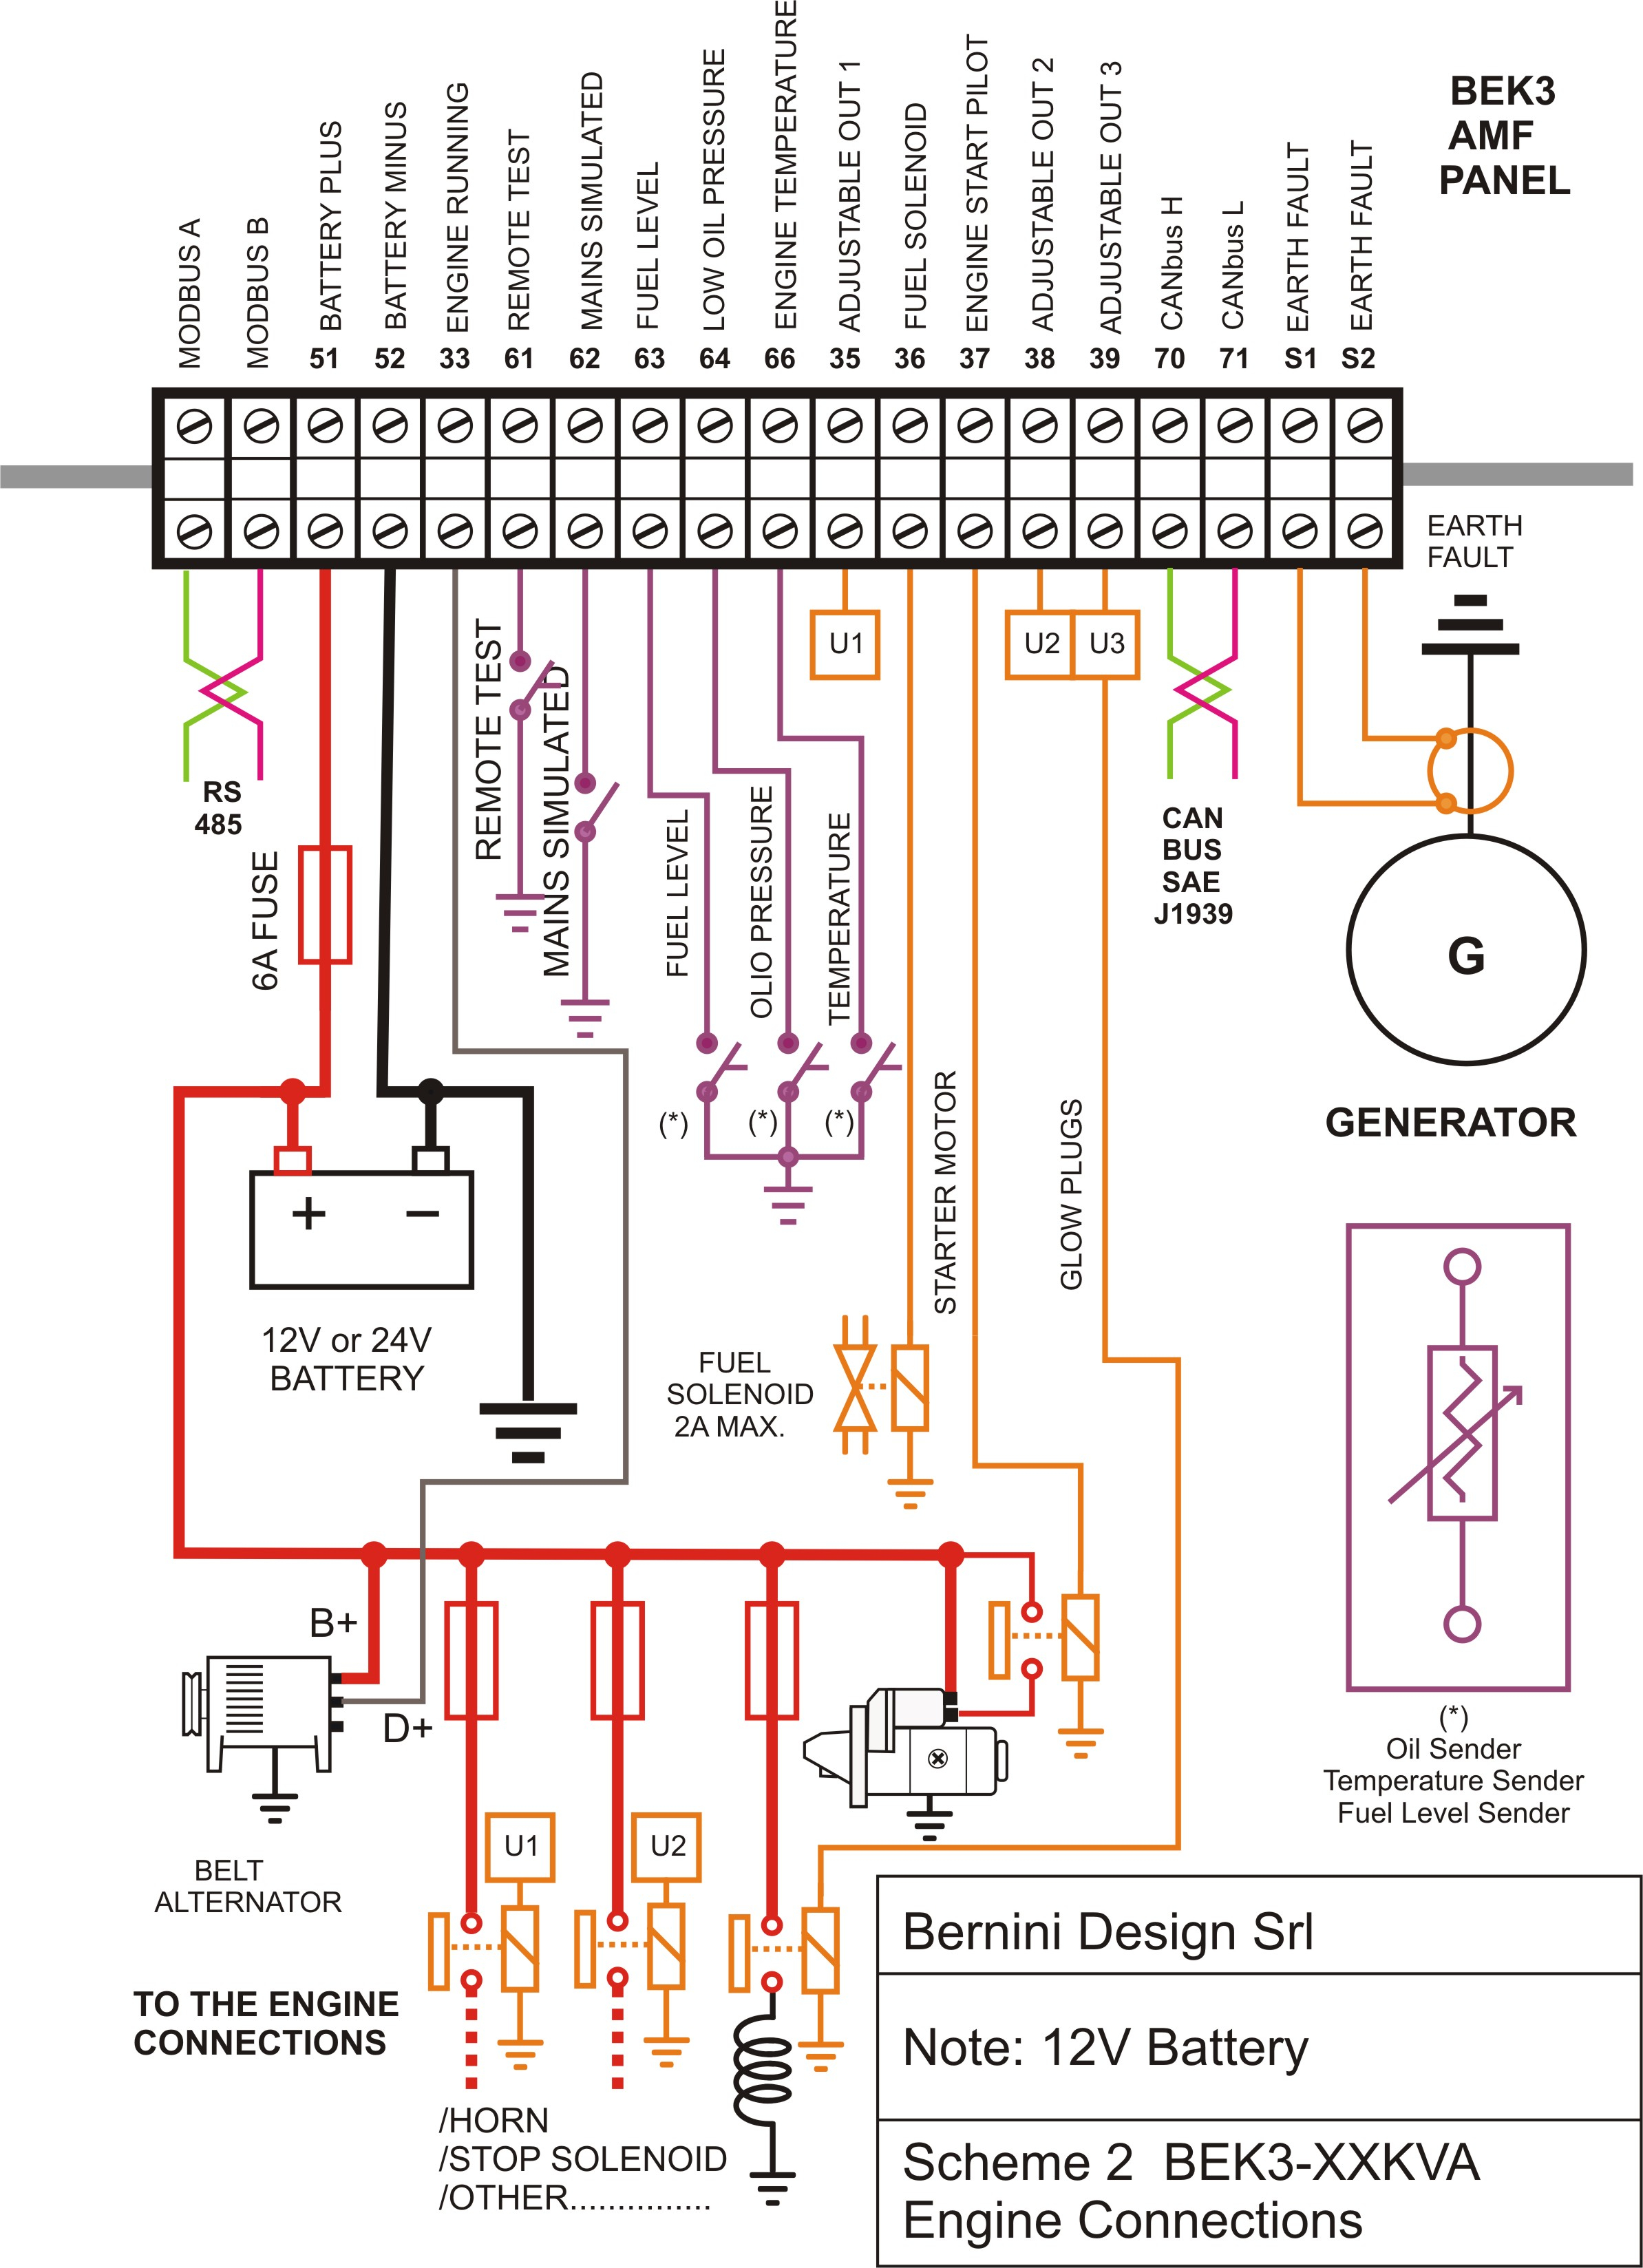 plc control panel wiring diagram pdf Collection-2387x3295 Car Diagram Electrical Drawing Basics Pdf Zen Diagram Electric 2-o